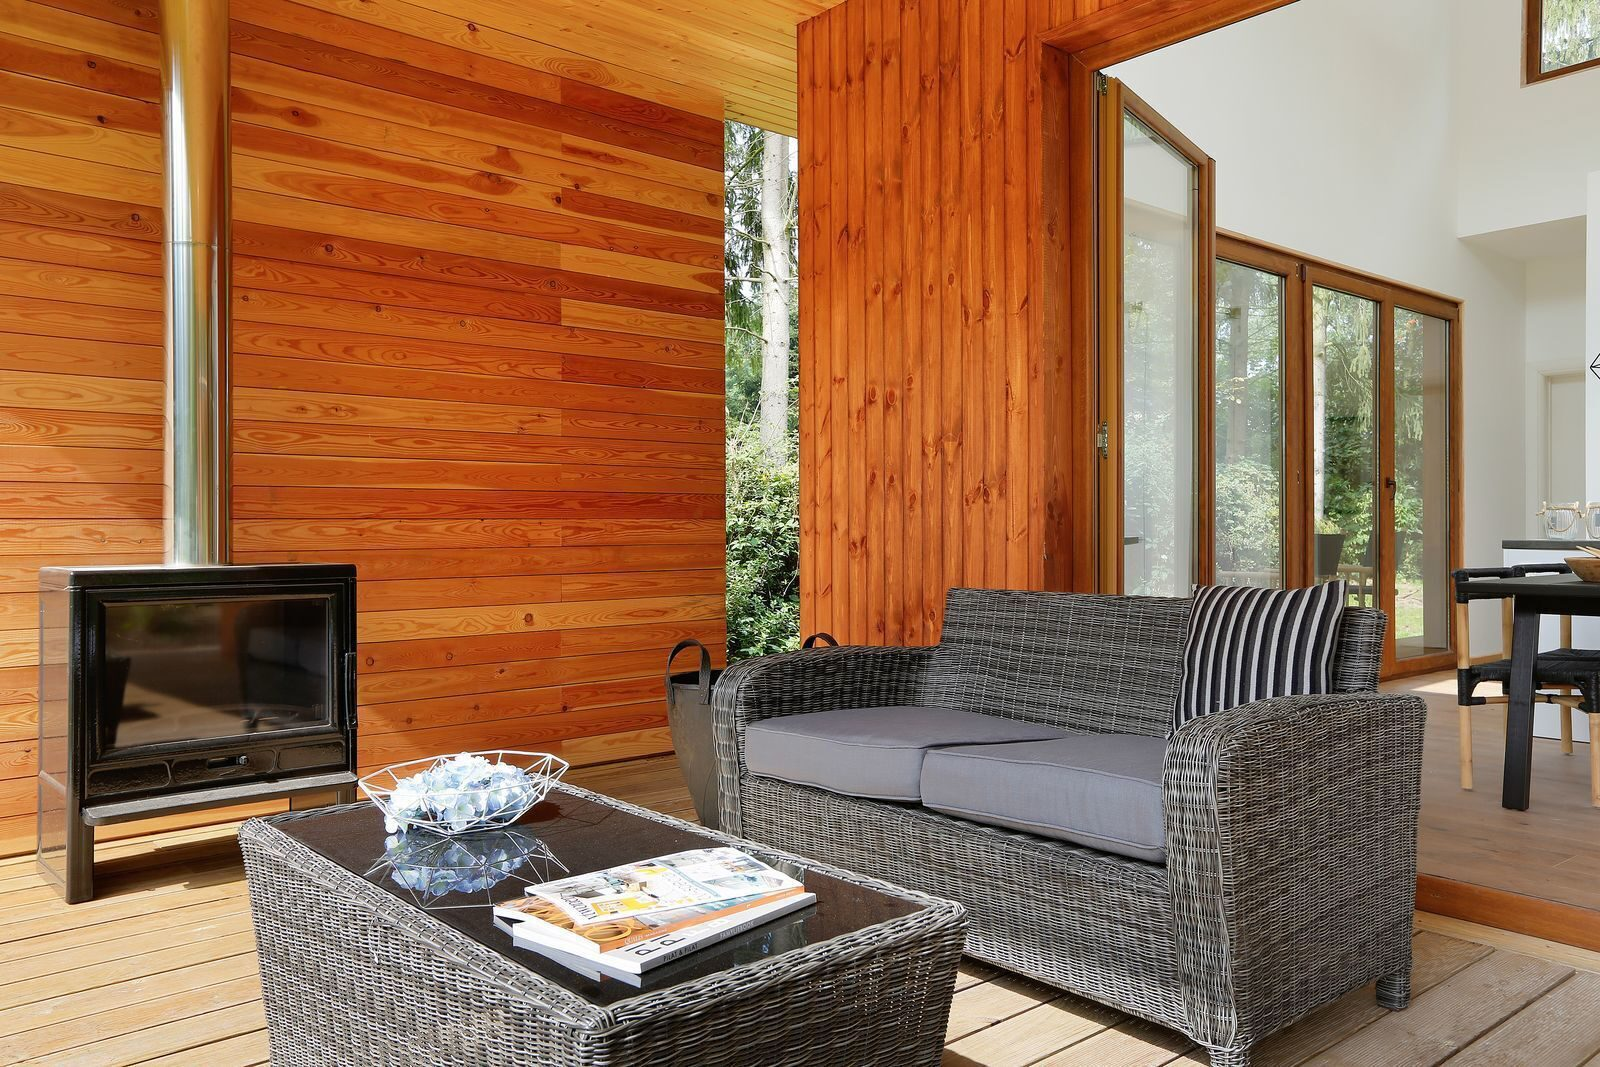 Rent a cottage fireplace